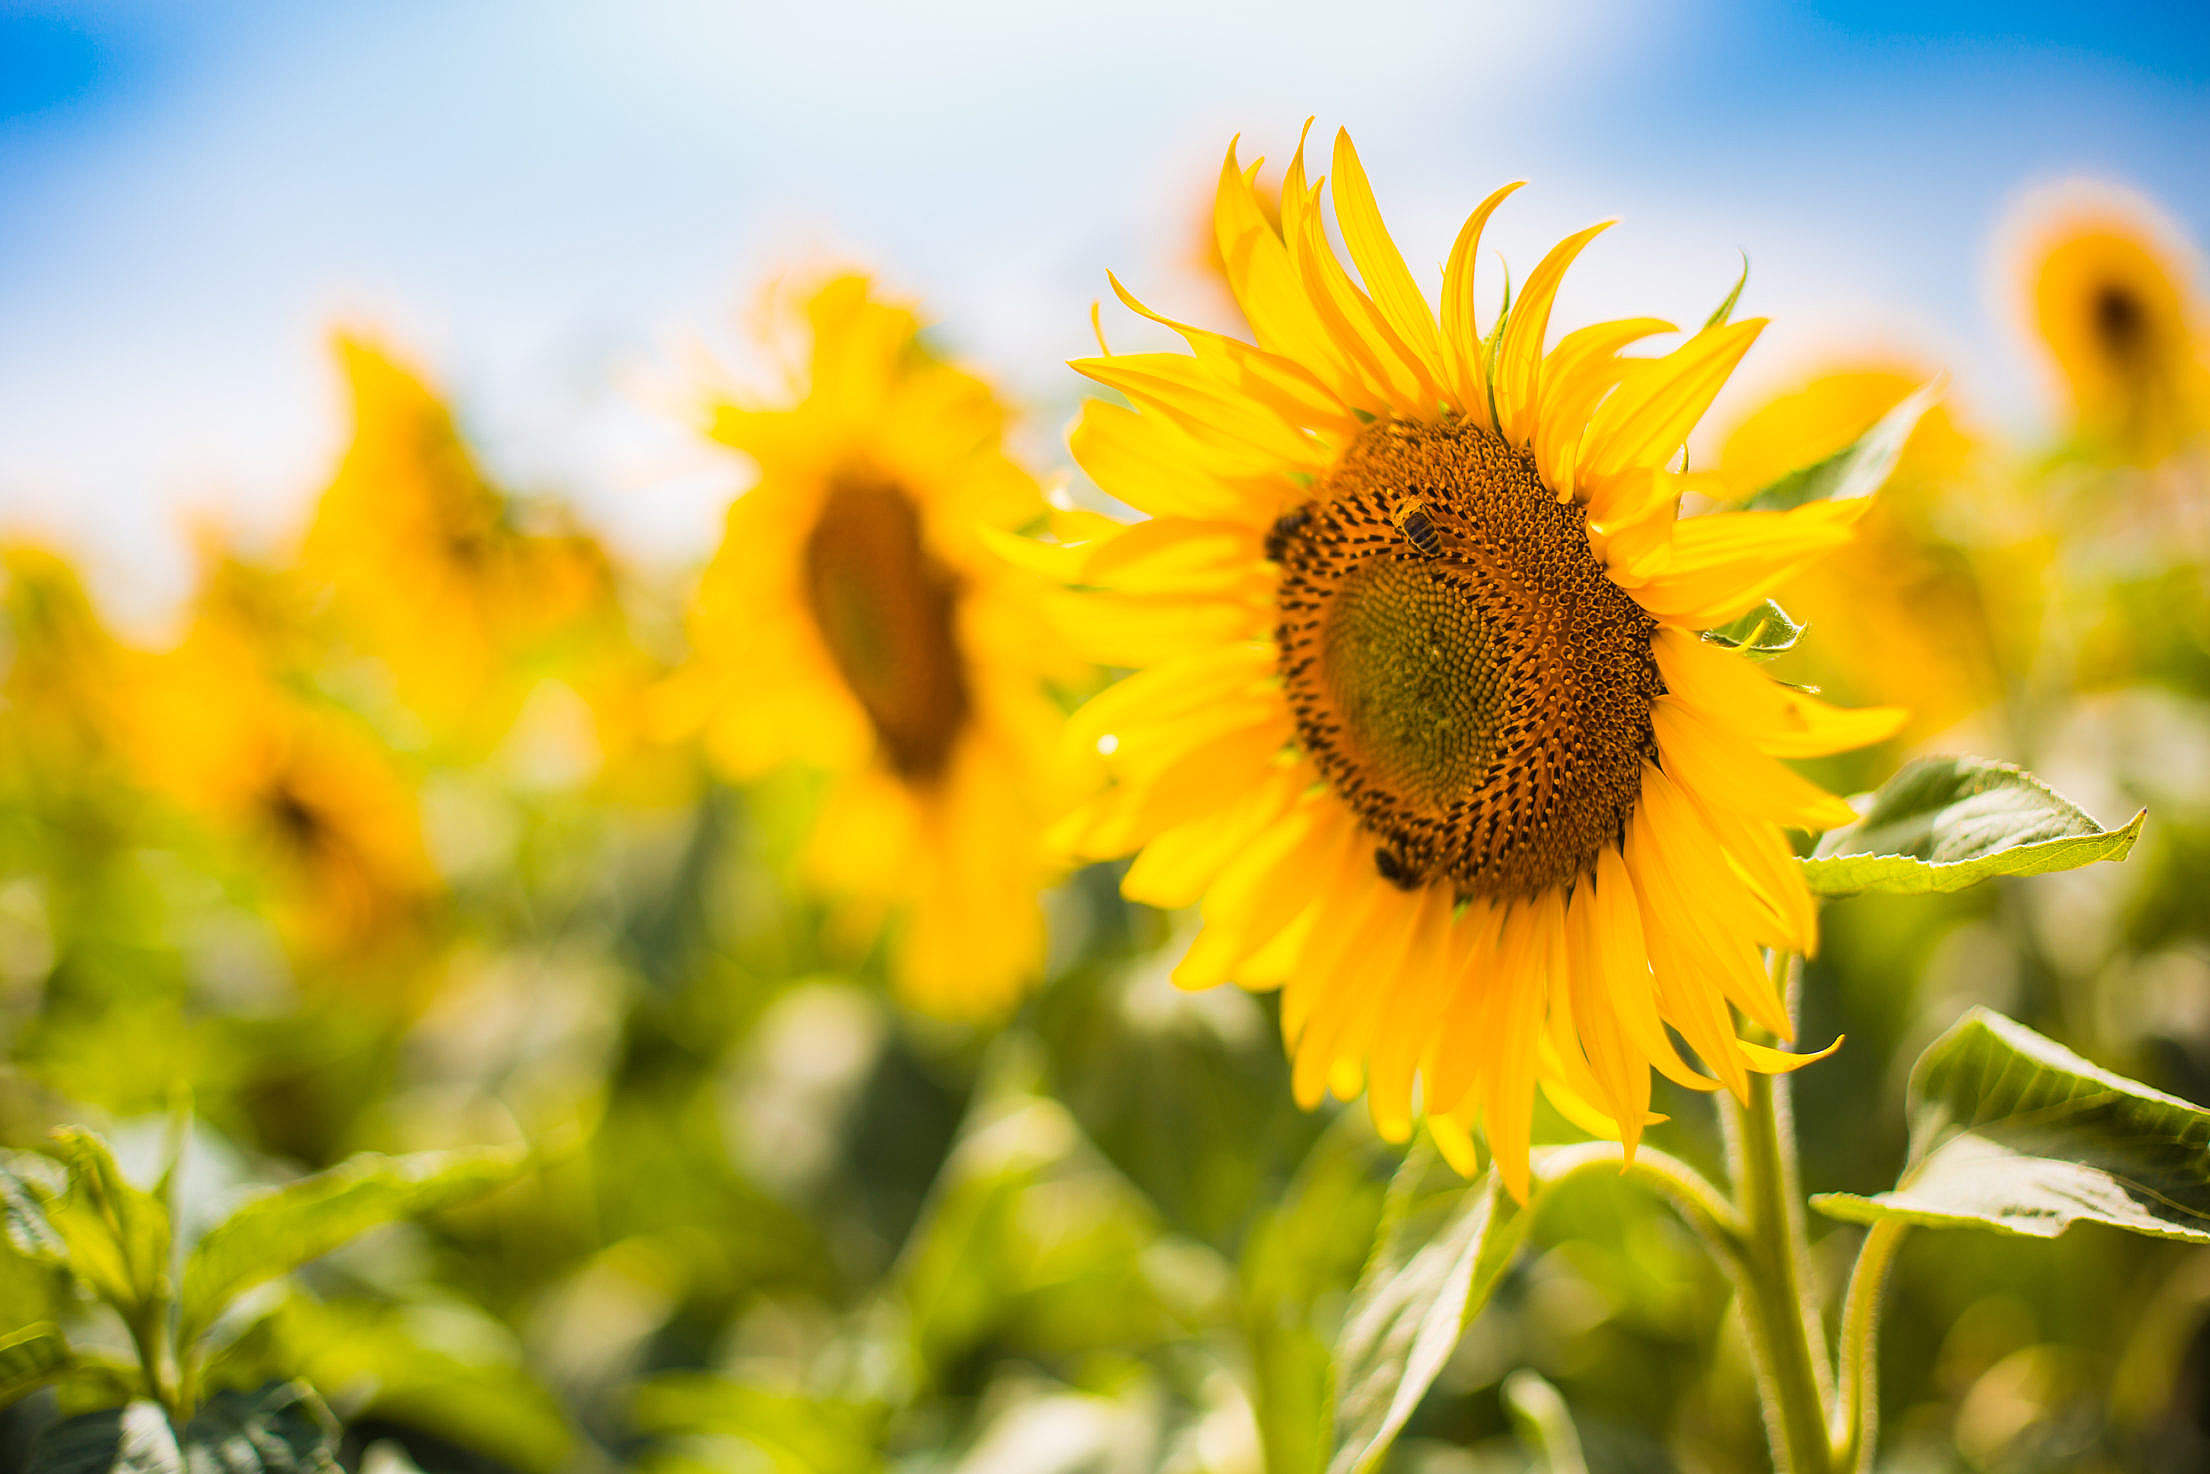 Bees Working on a Big Colorful Sunflower Free Stock Photo